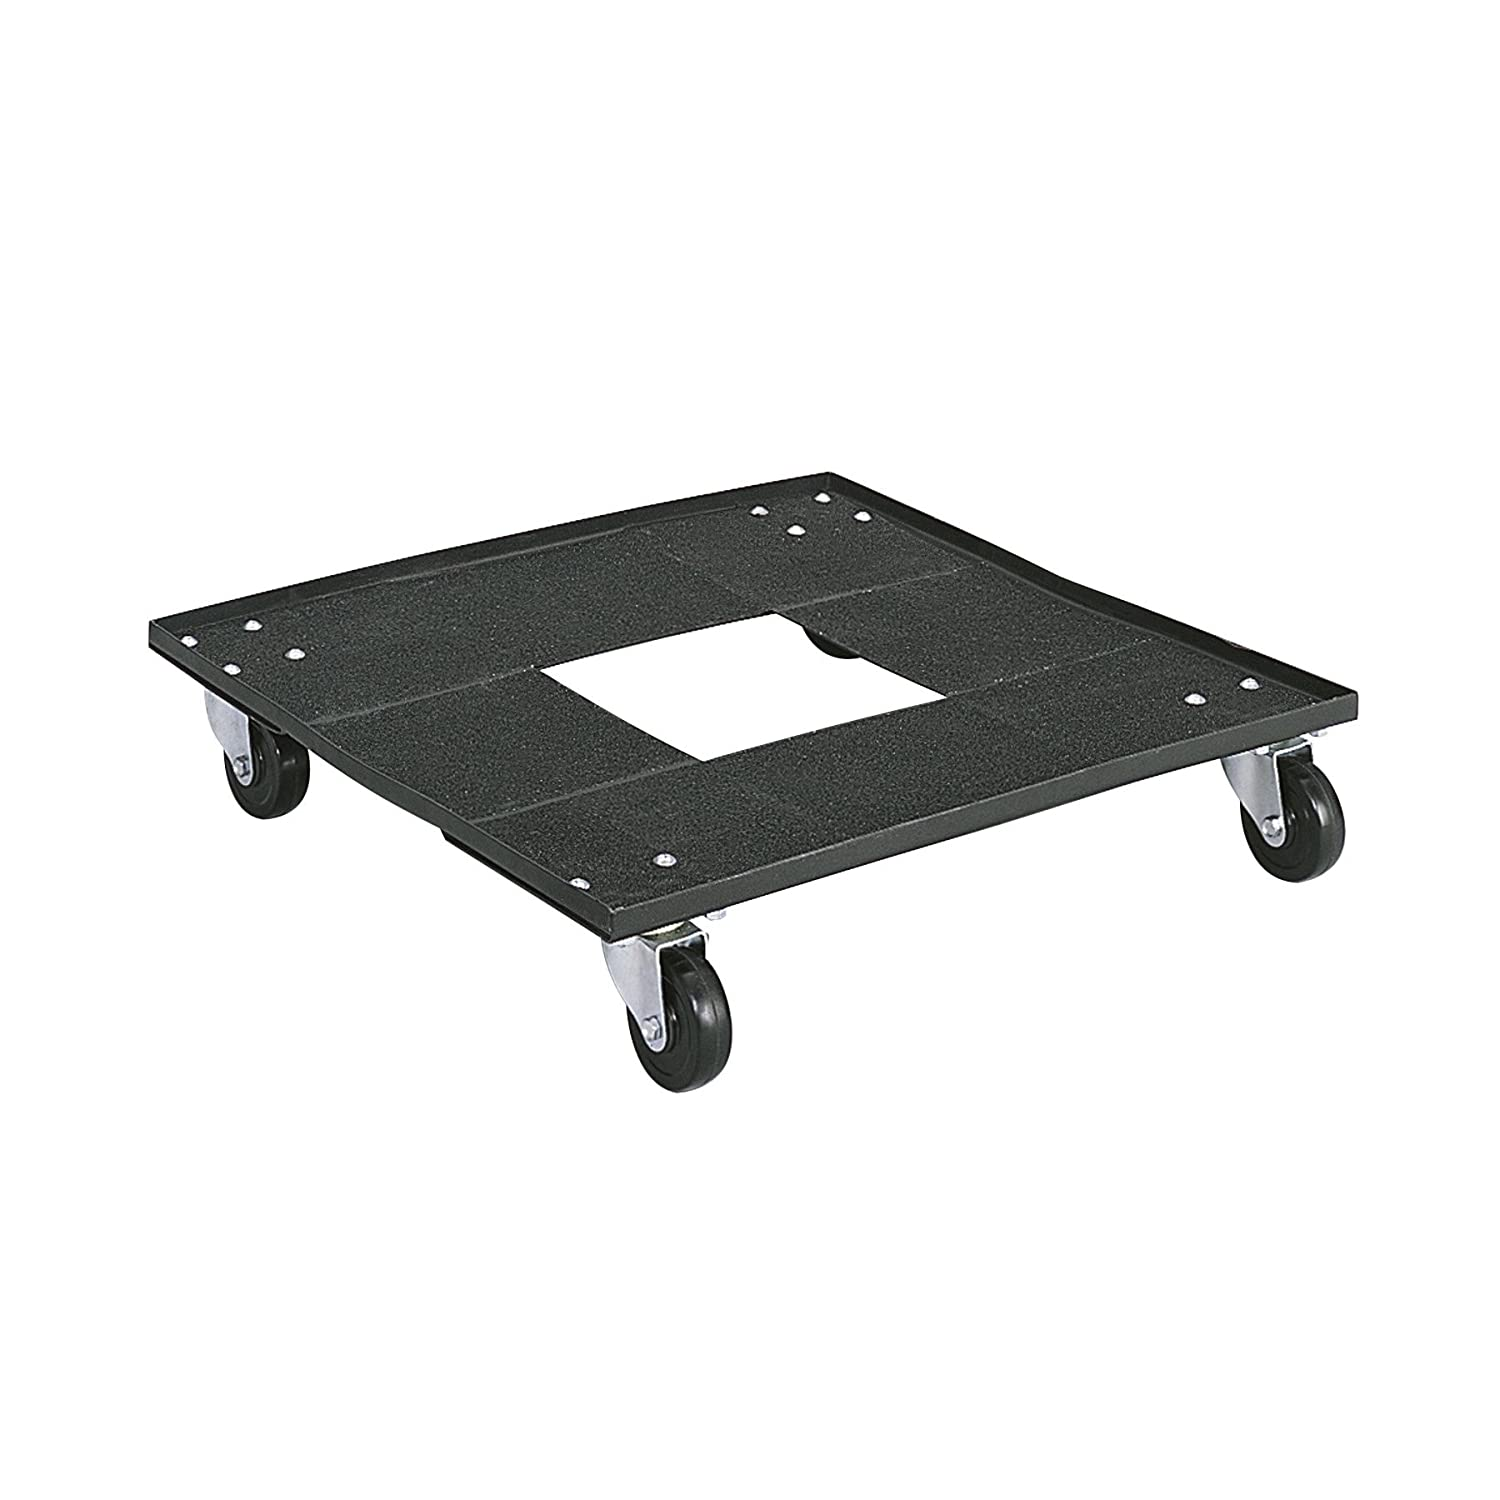 B00006IC1I Safco Products Stack Chair Cart for 4185 Stack Chairs and Visit Stack Chairs, sold separately, Black 714hNudo2BhL._SL1500_